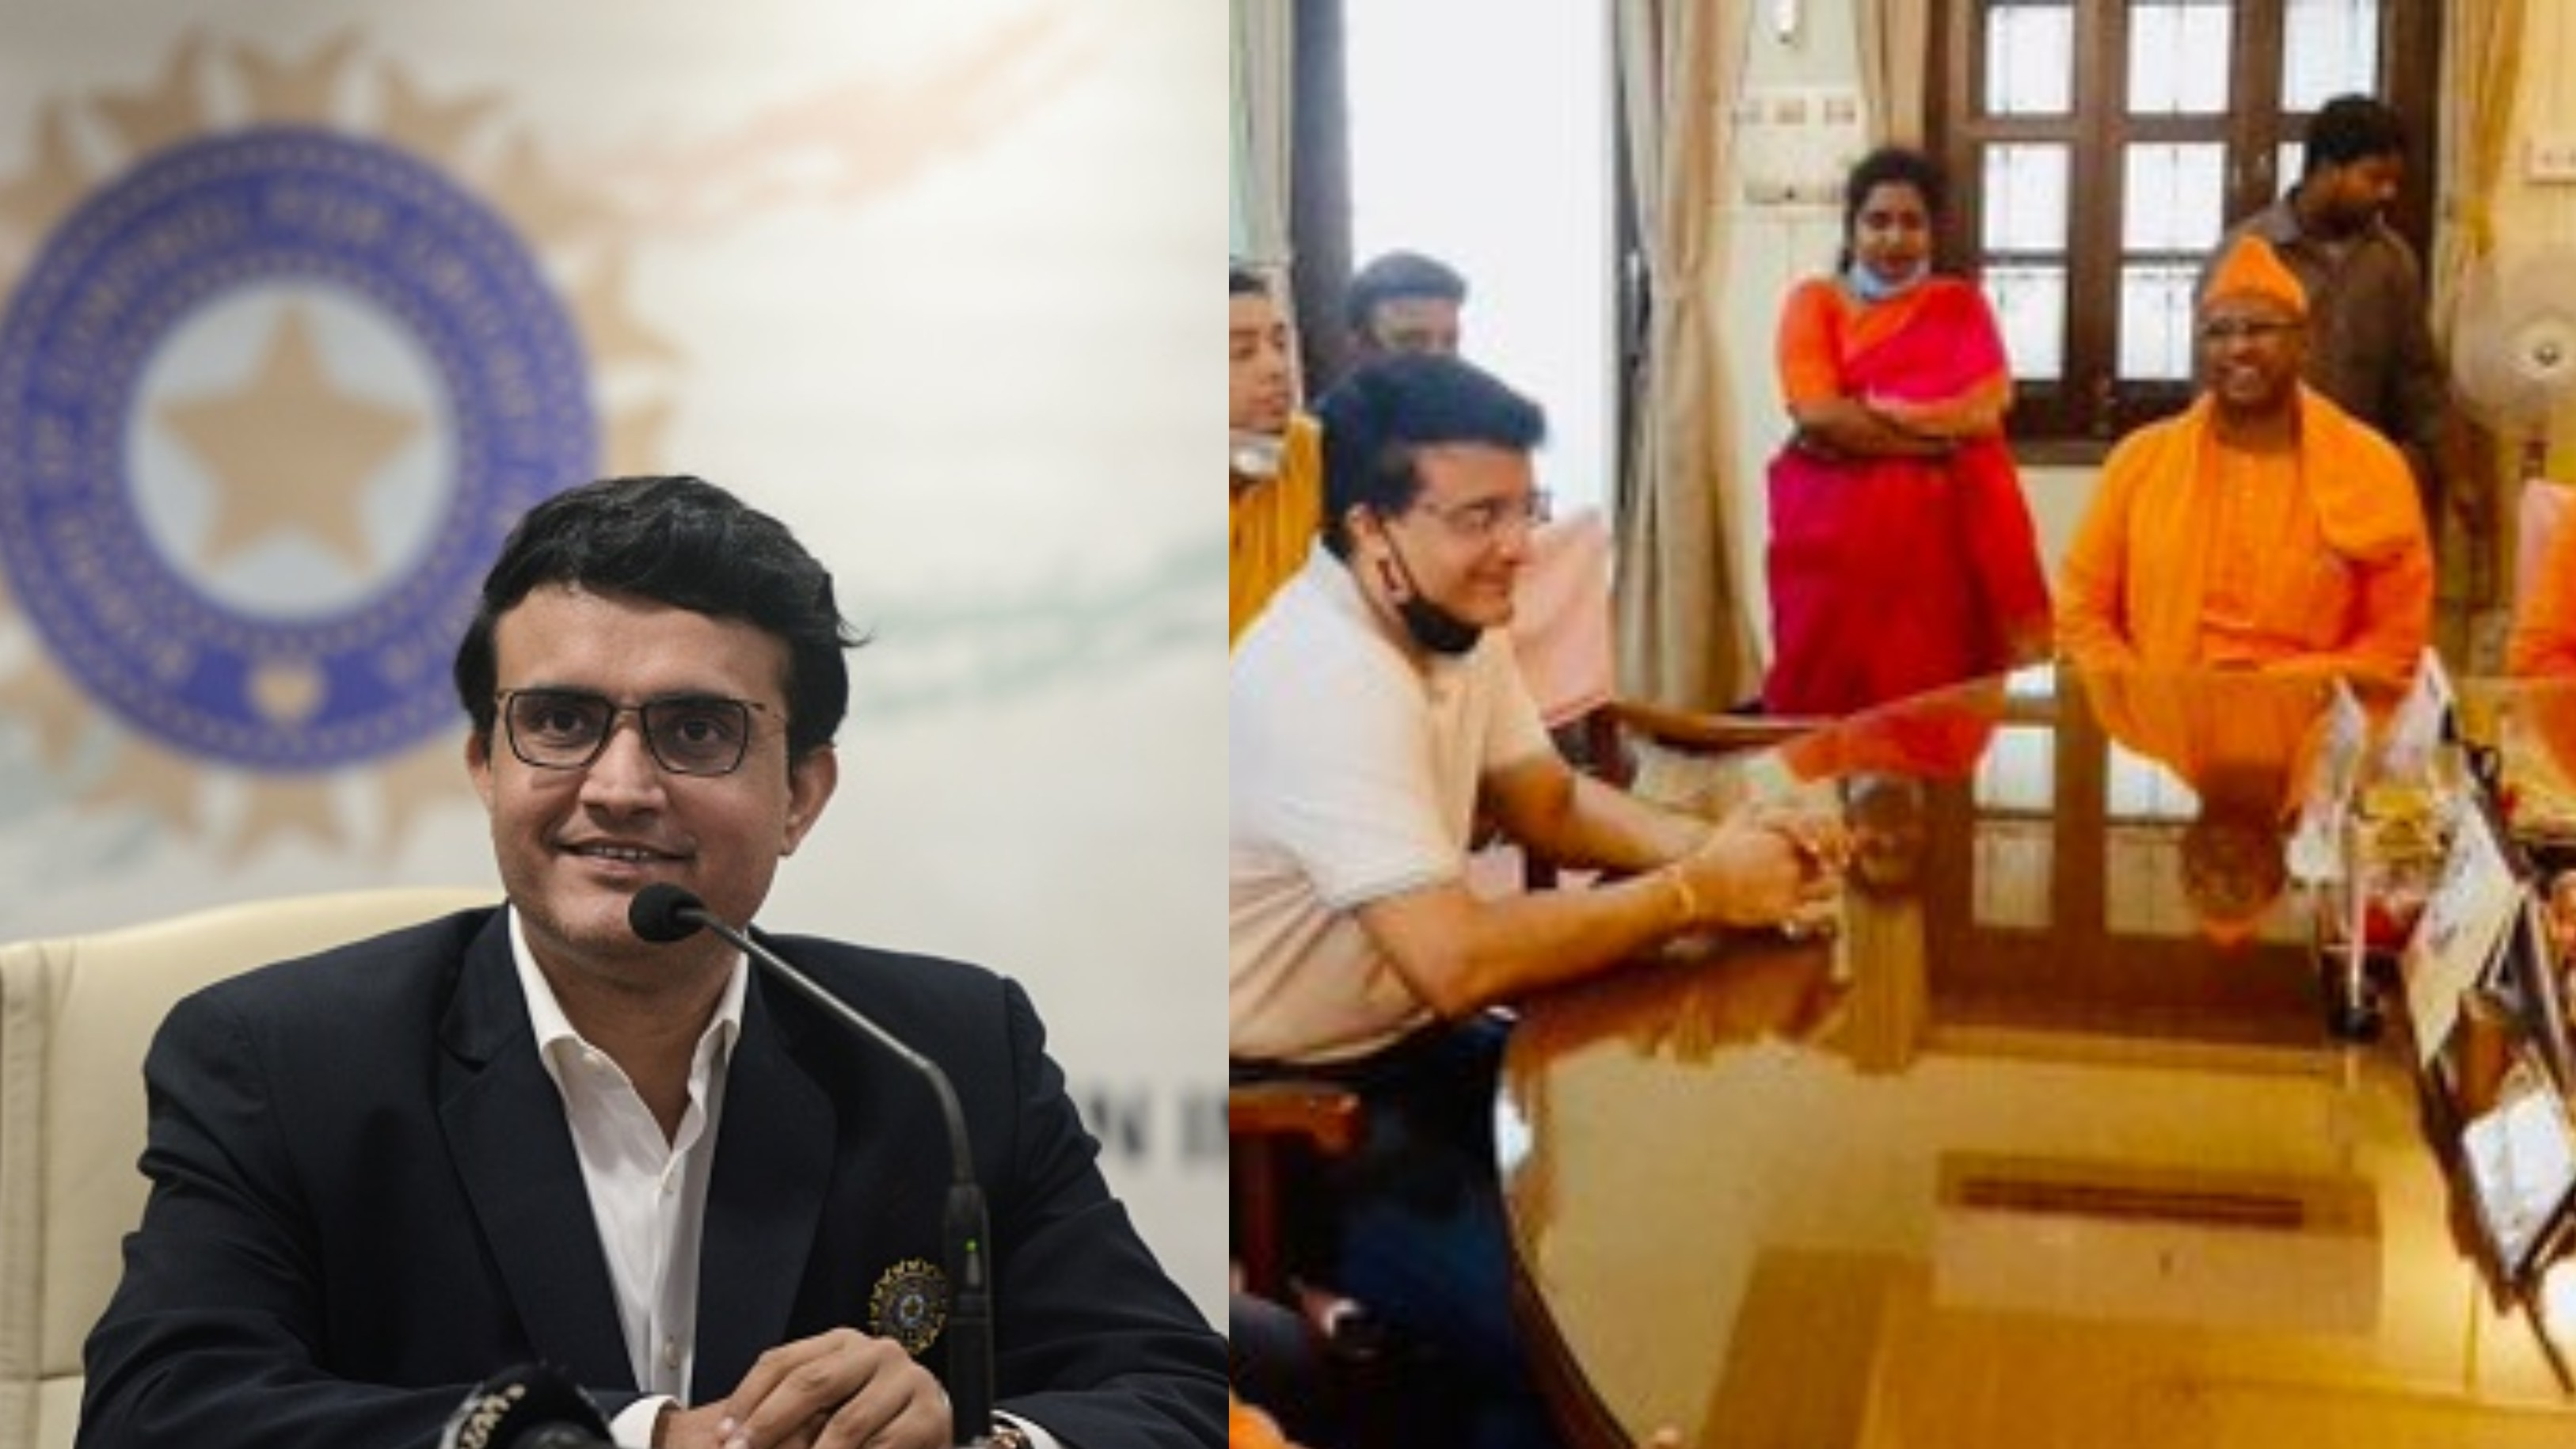 Sourav Ganguly visits Belur Math after 25 years to donate 2000 kg of rice amid COVID-19 lockdown